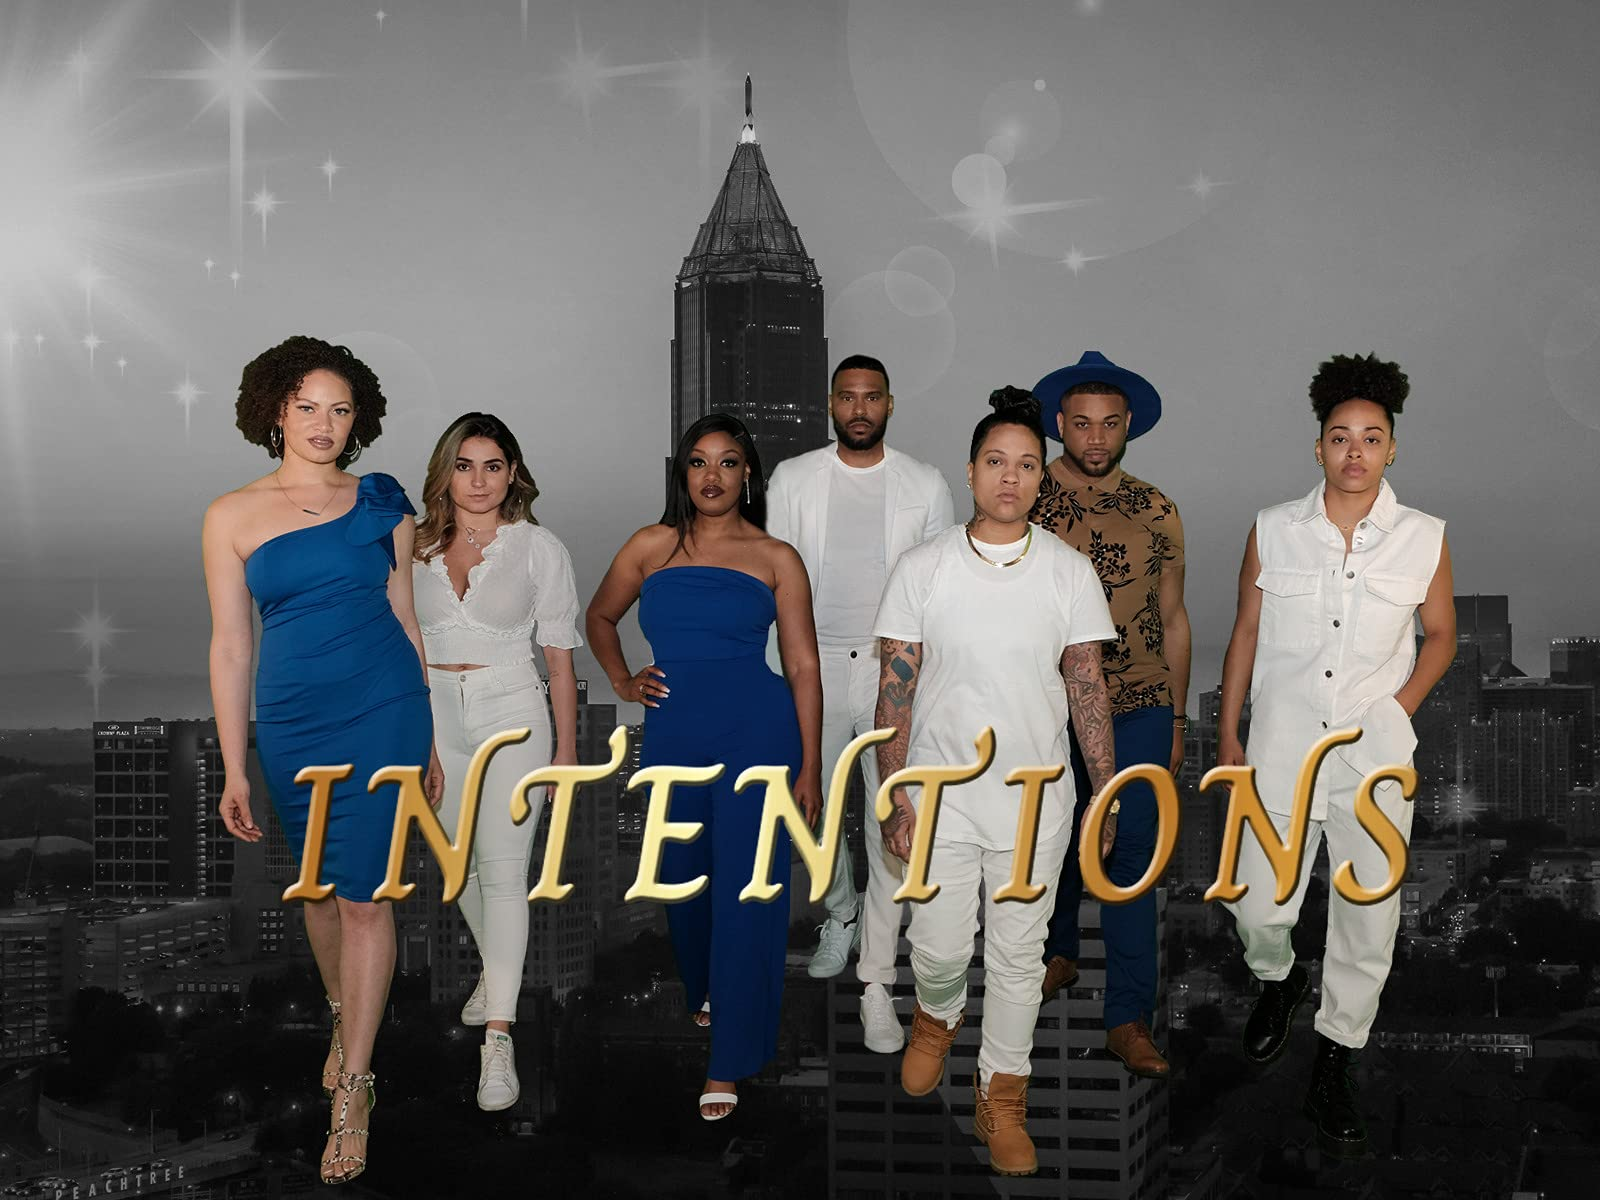 Intentions on Amazon Prime Video UK